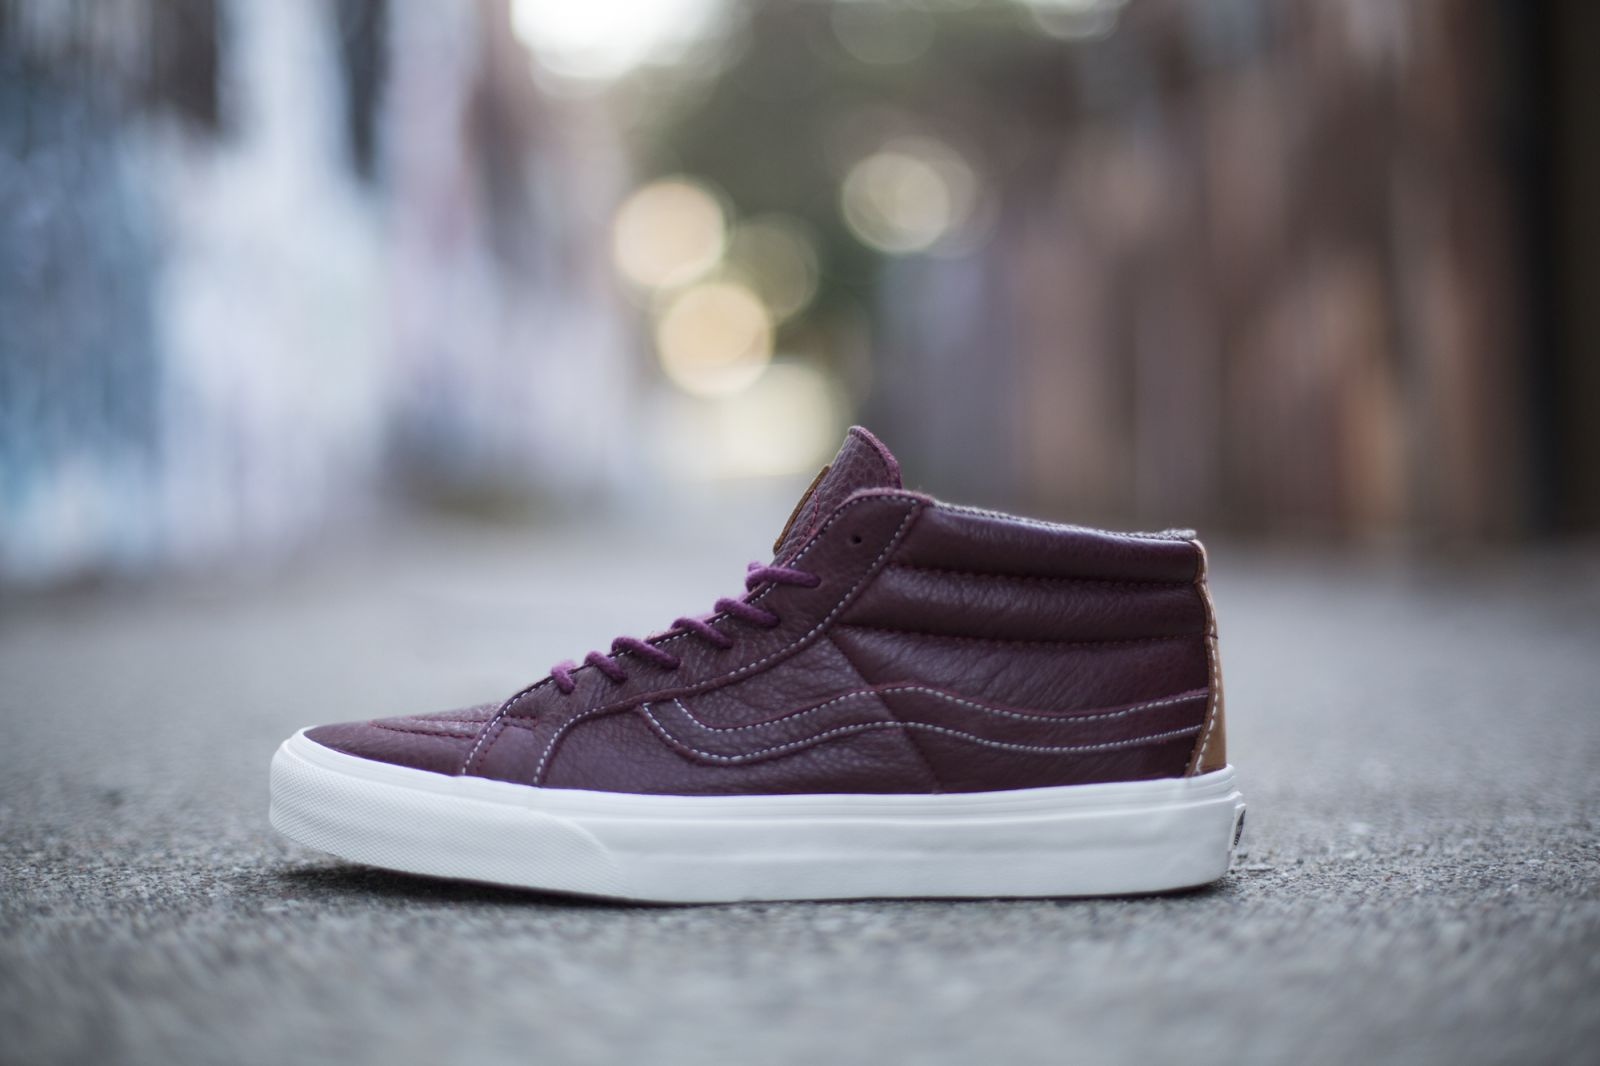 vans-california-sk8-mid-waxed-leather-pack-4